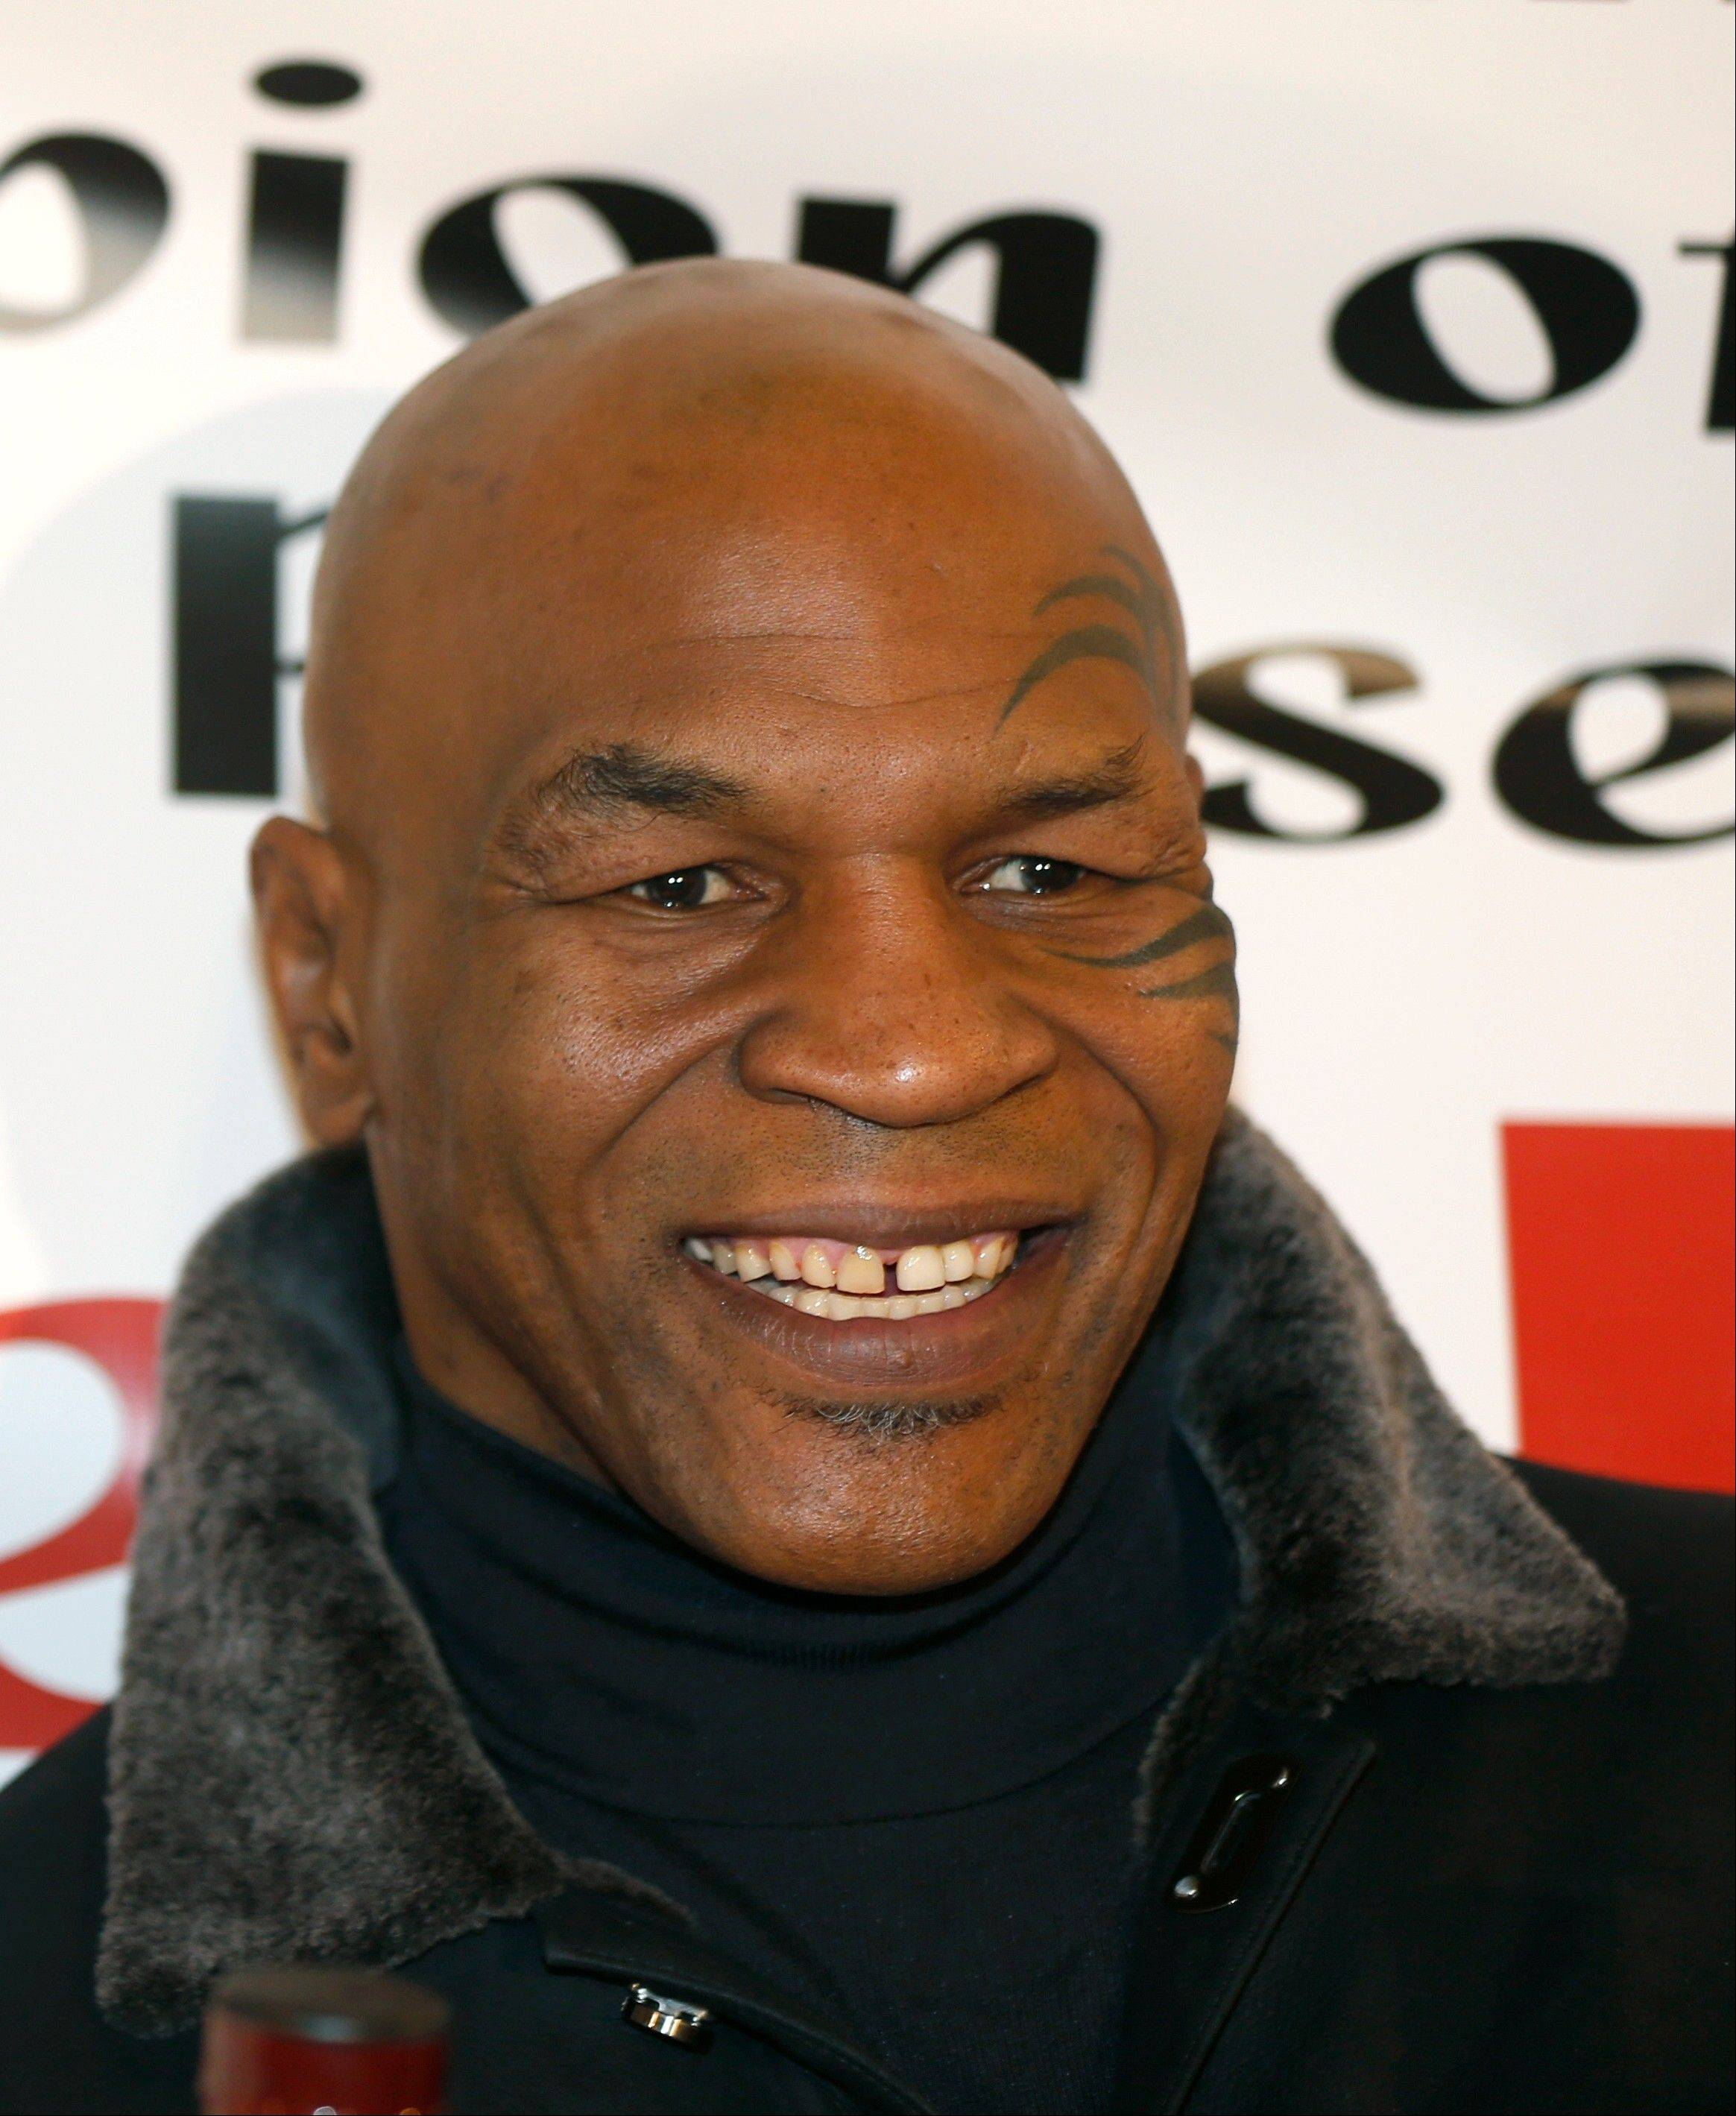 Former heavyweight champion Mike Tyson and his wife sued SFX Financial Advisory Management Services, a subsidiary of Live Nation Entertainment, on Wednesday claiming a former employee of the financial services company embezzled more than $300,000 from them and cost them millions in lucrative contracts.